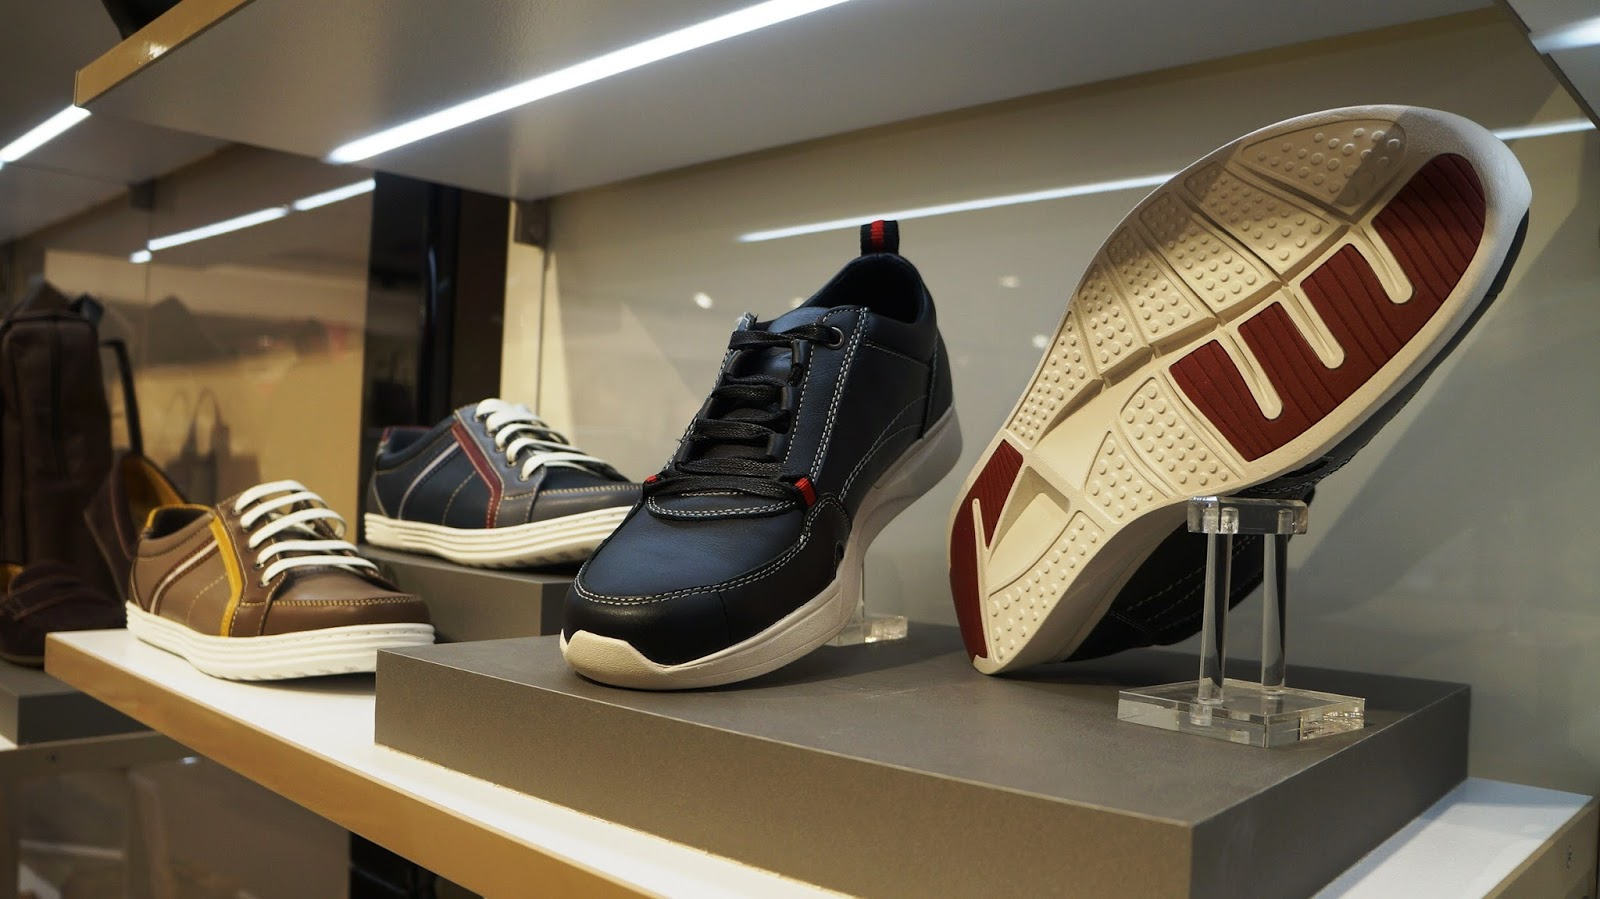 Bata, the global brand that has been a pioneer of innovative footwear for more than years, launches its first store in the Philippines in partnership with SM Retail at the 3rd Level of SM Megamall Building B on Friday, December 2,